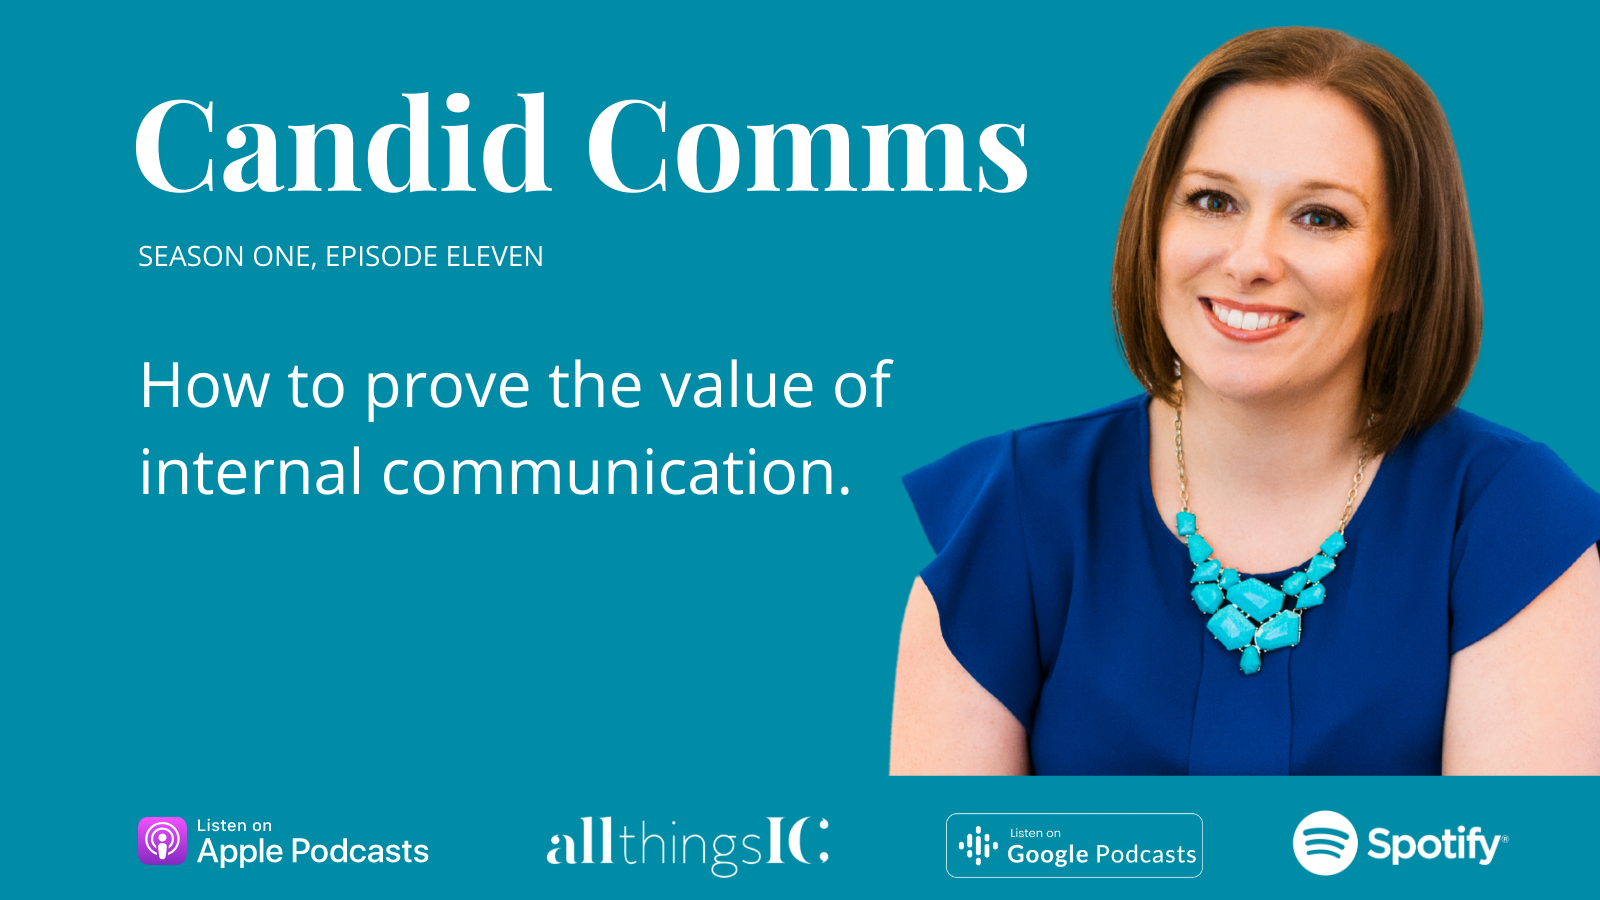 Podcast: How to prove the value of internal communication